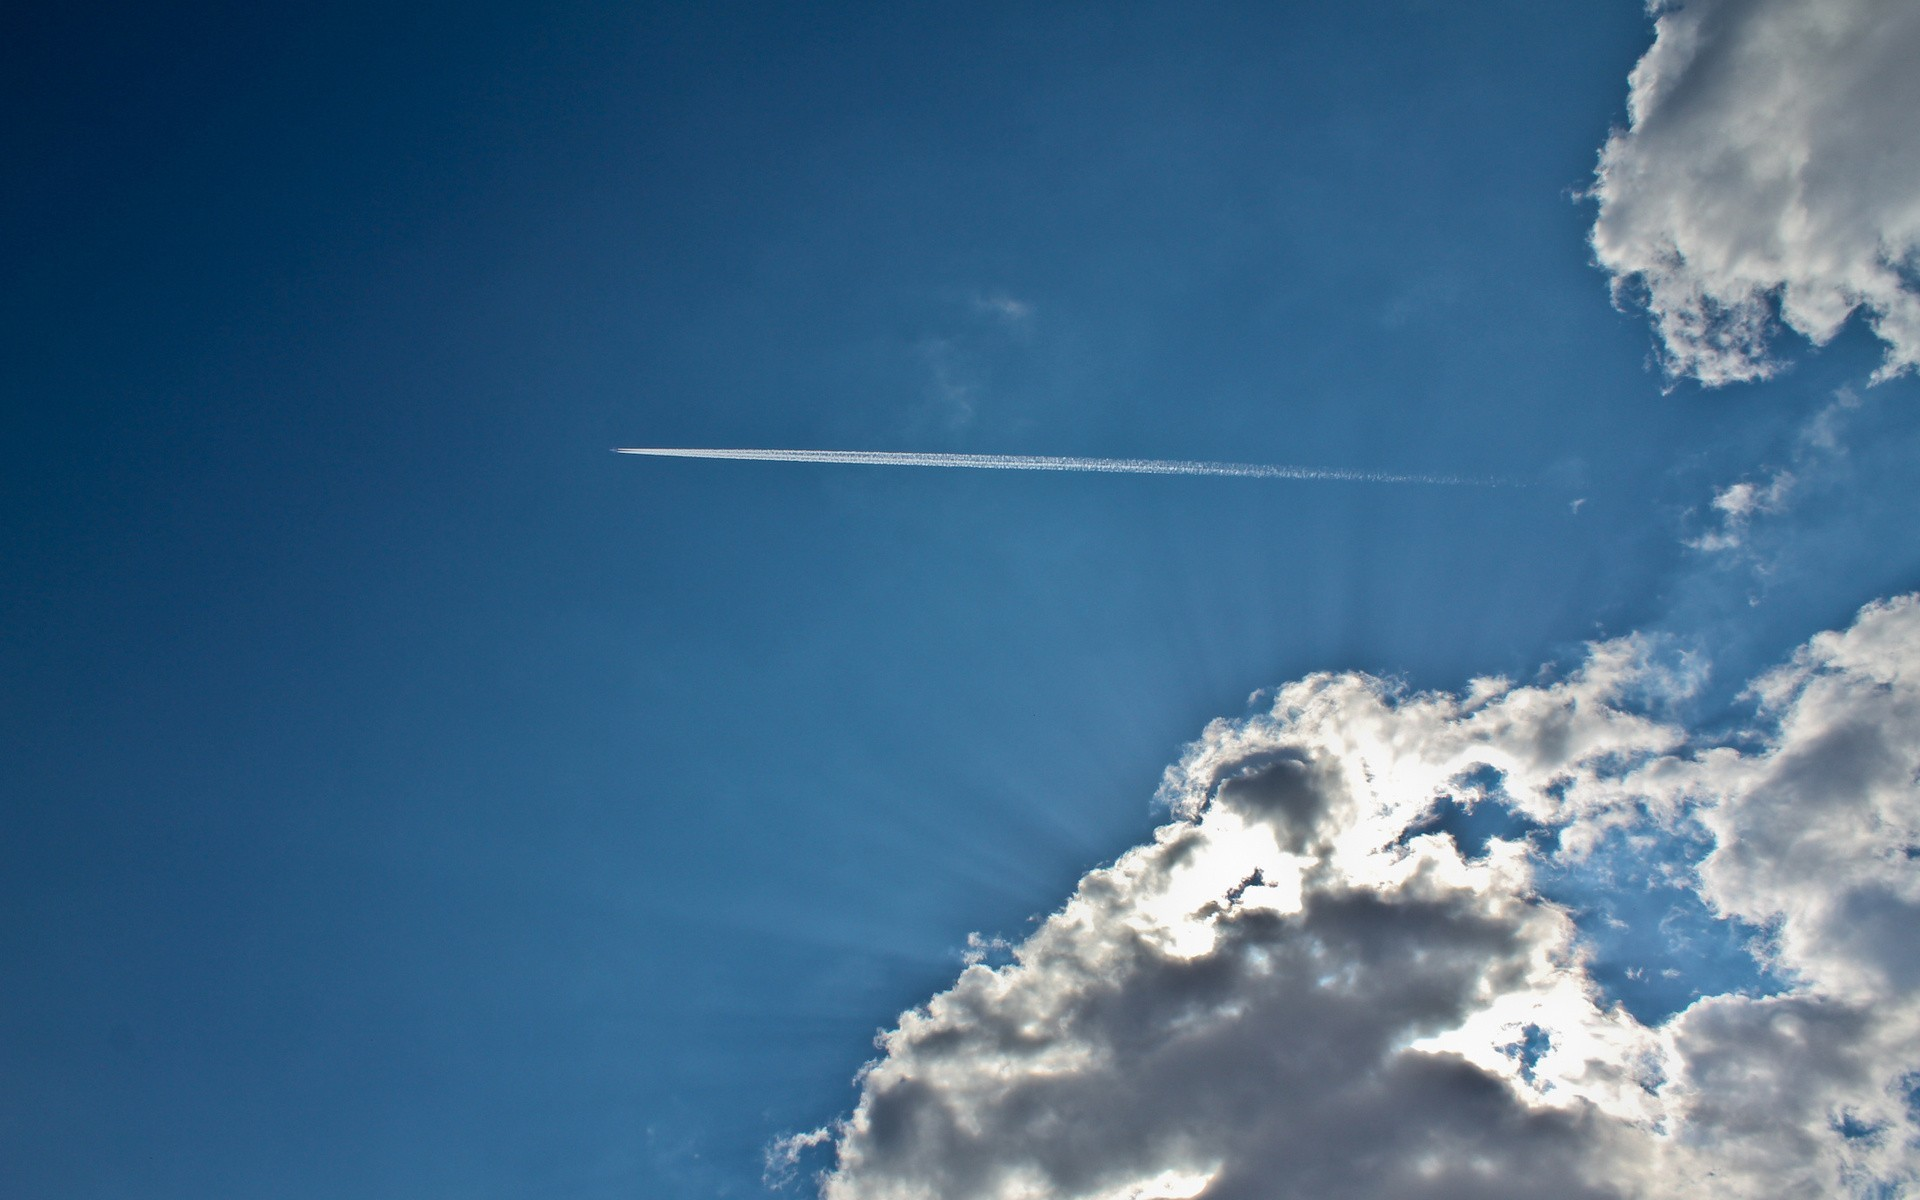 clouds Aircraft contrails skyscapes HD Wallpaper